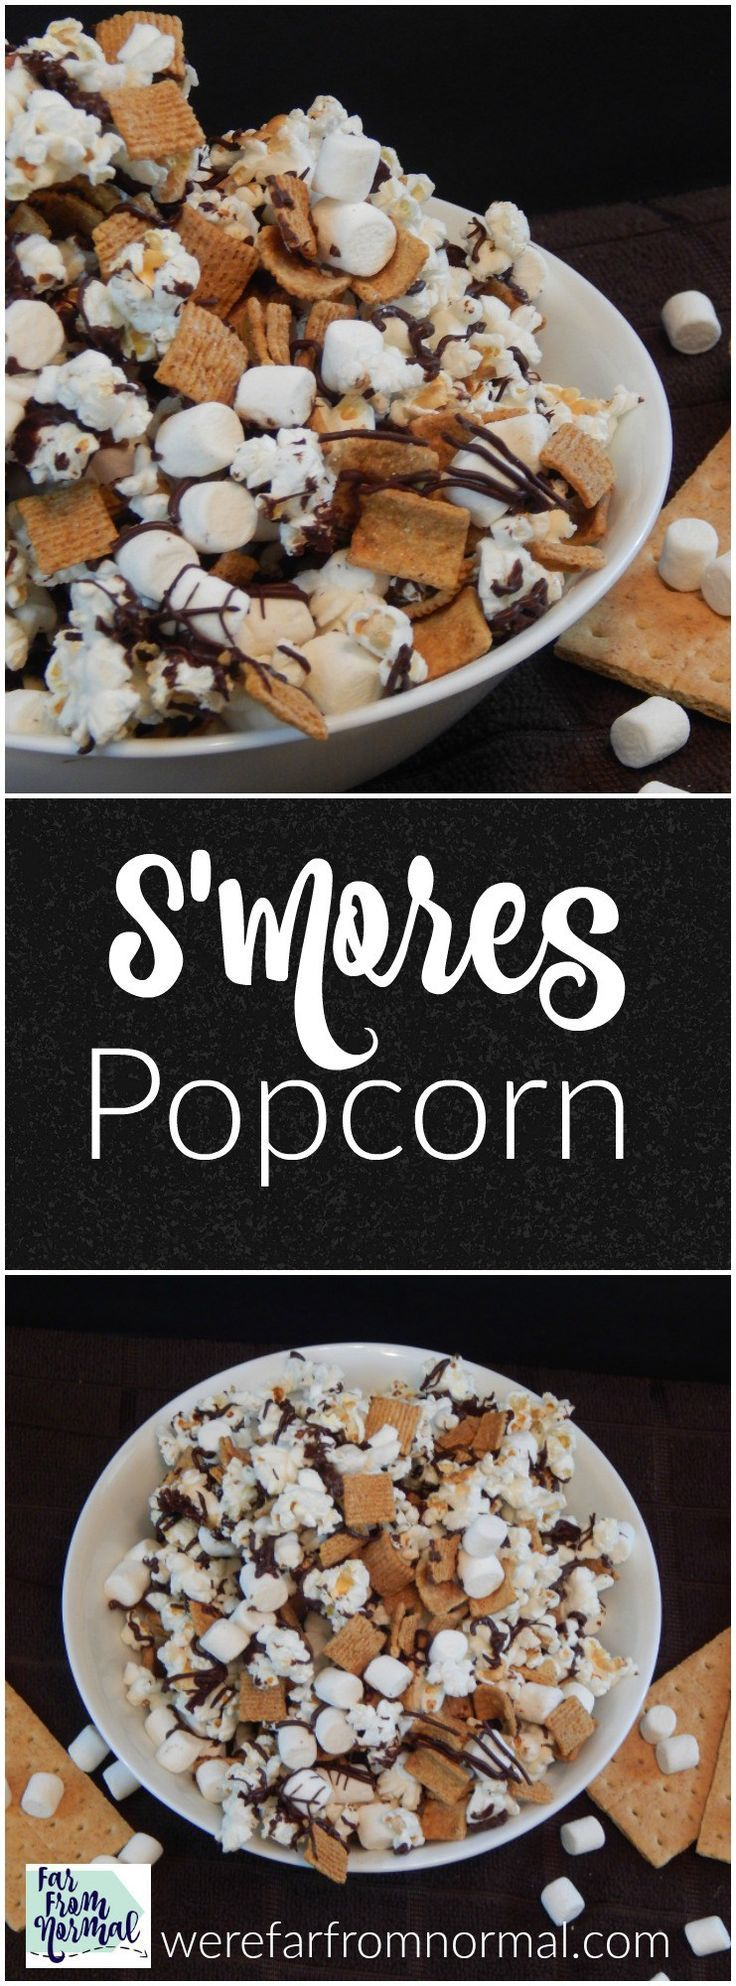 Do you love s'mores? This s'mores popcorn combines your favorite snack with the delicious chocolate, graham cracker, and marshmallow taste of s'mores!